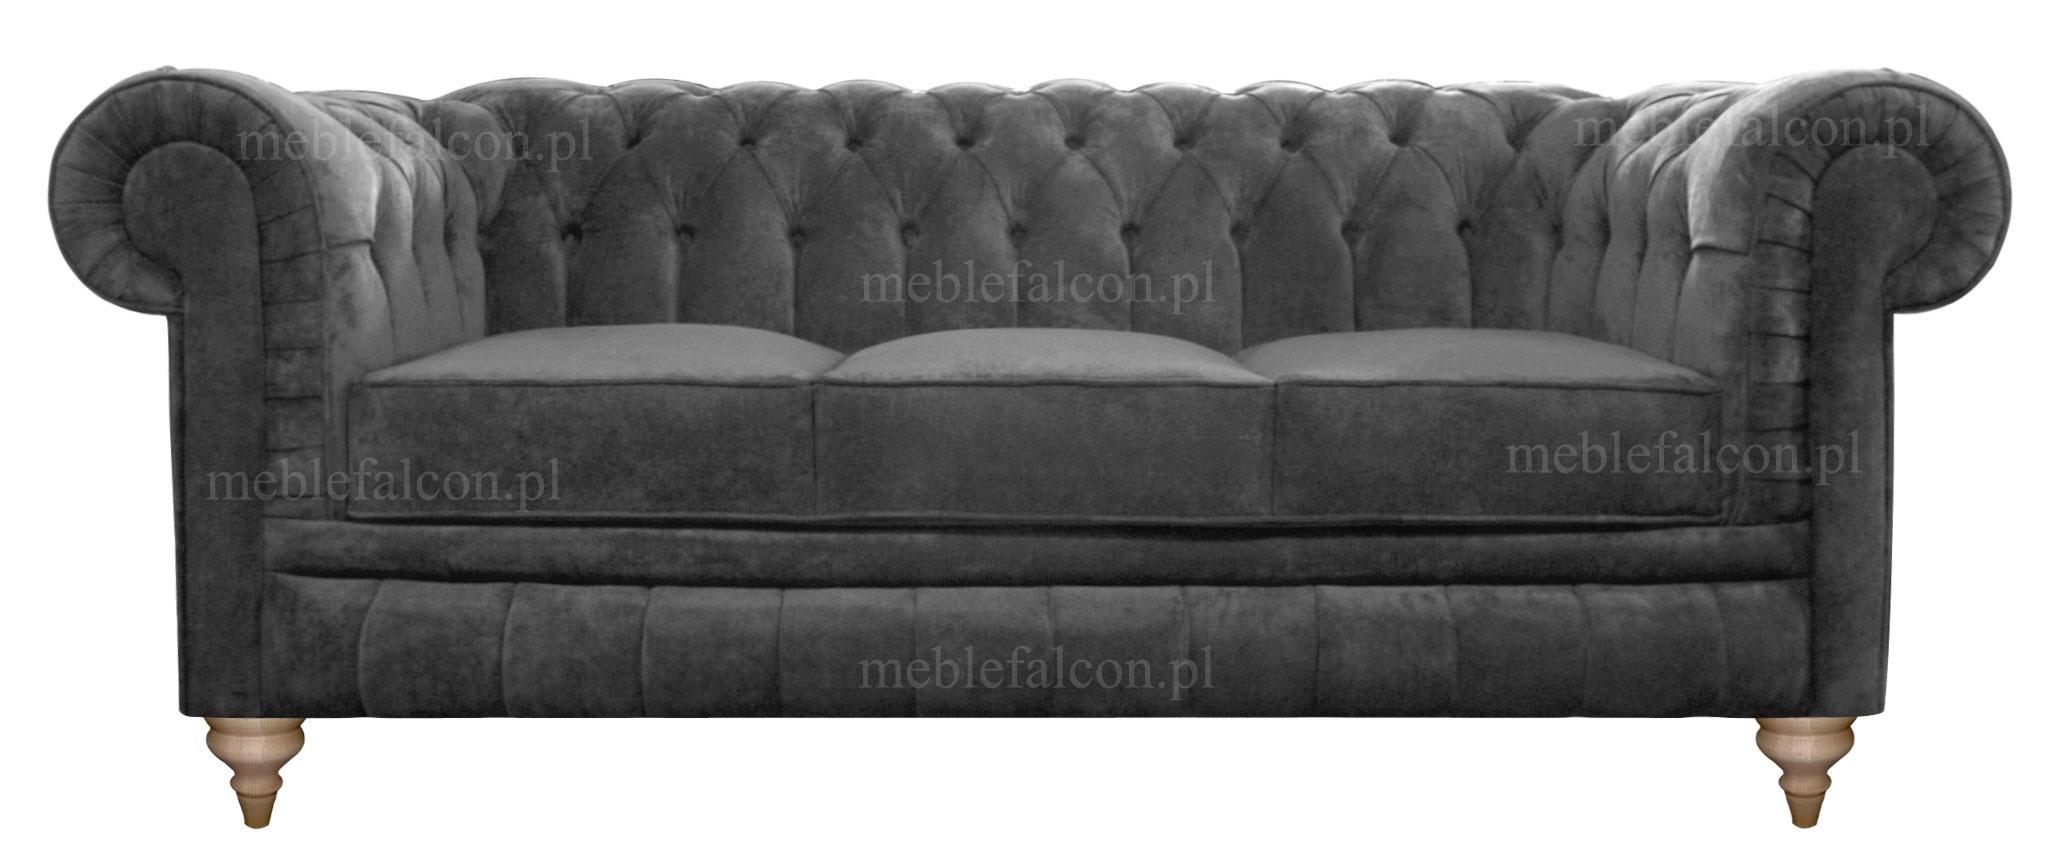 Sofa 2 Osobowa Sofa Chesterfield